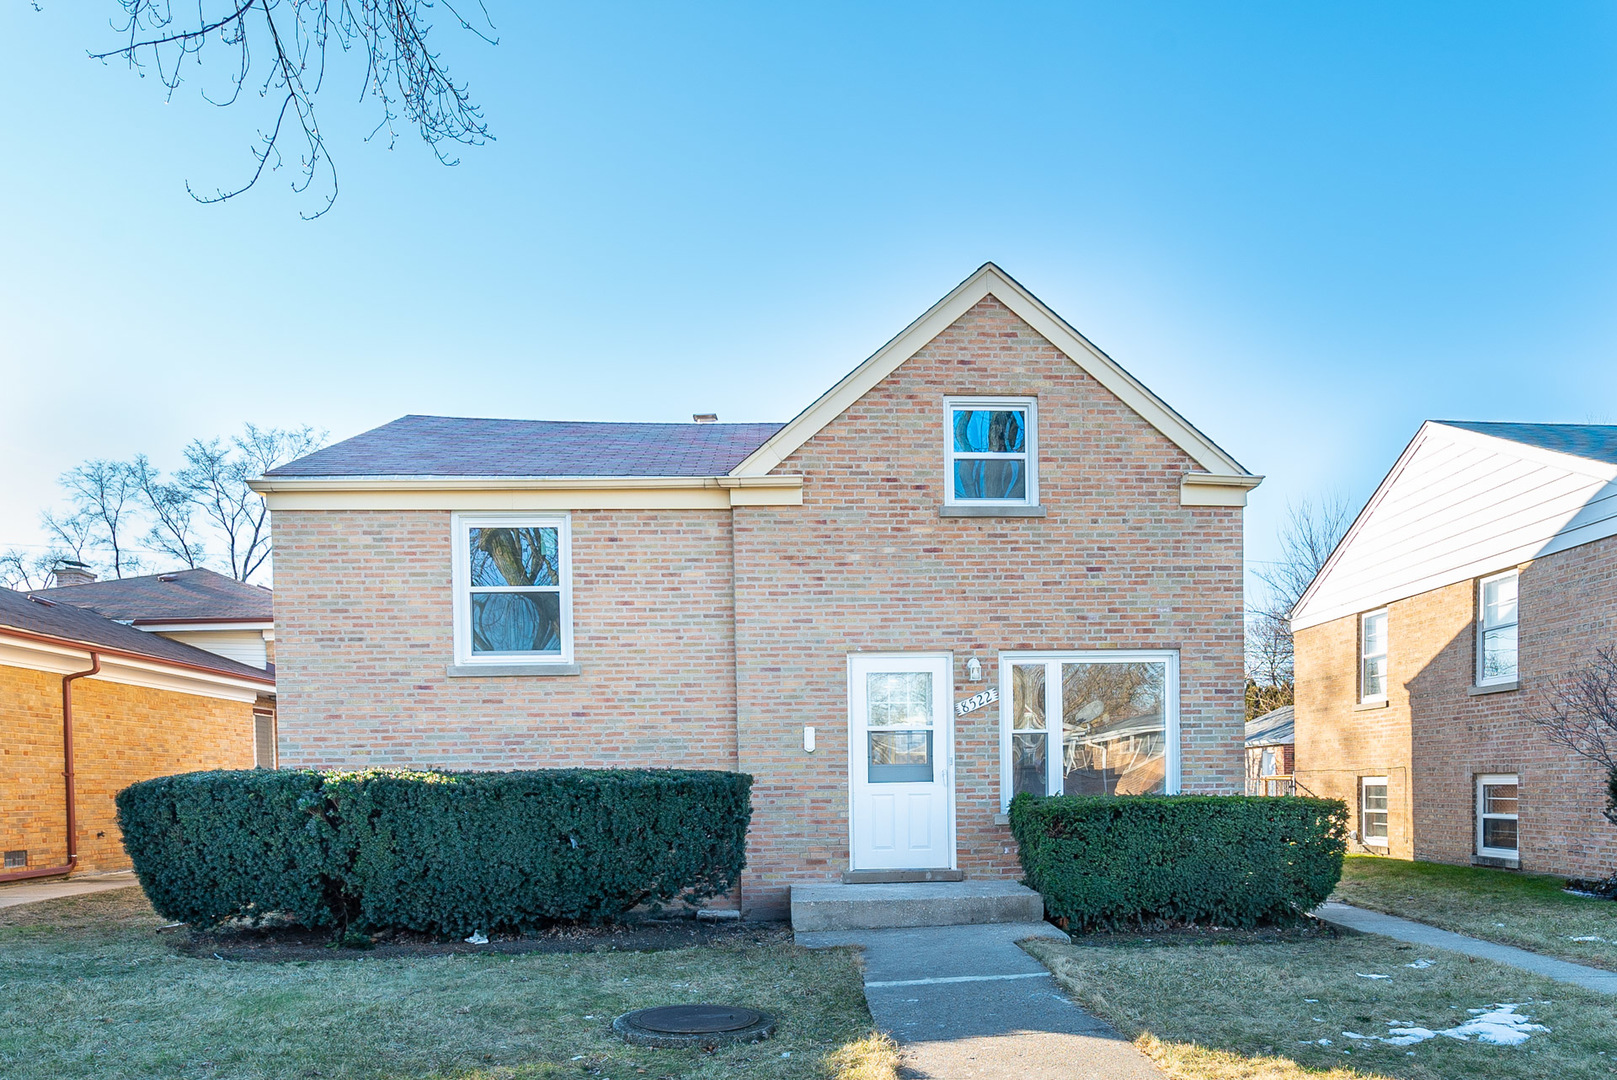 8522 Drake Avenue, Skokie in Cook County, IL 60076 Home for Sale